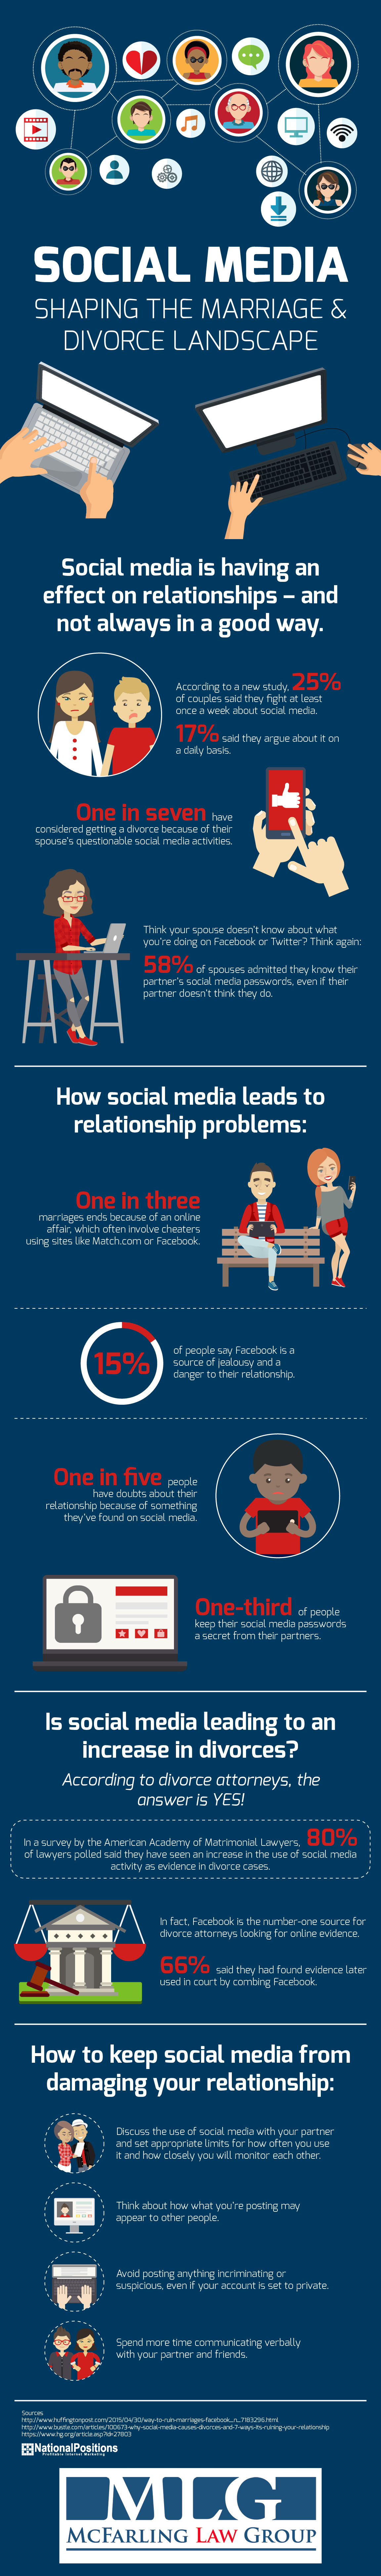 Social Media Shaping the Marriage & Divorce Landscape